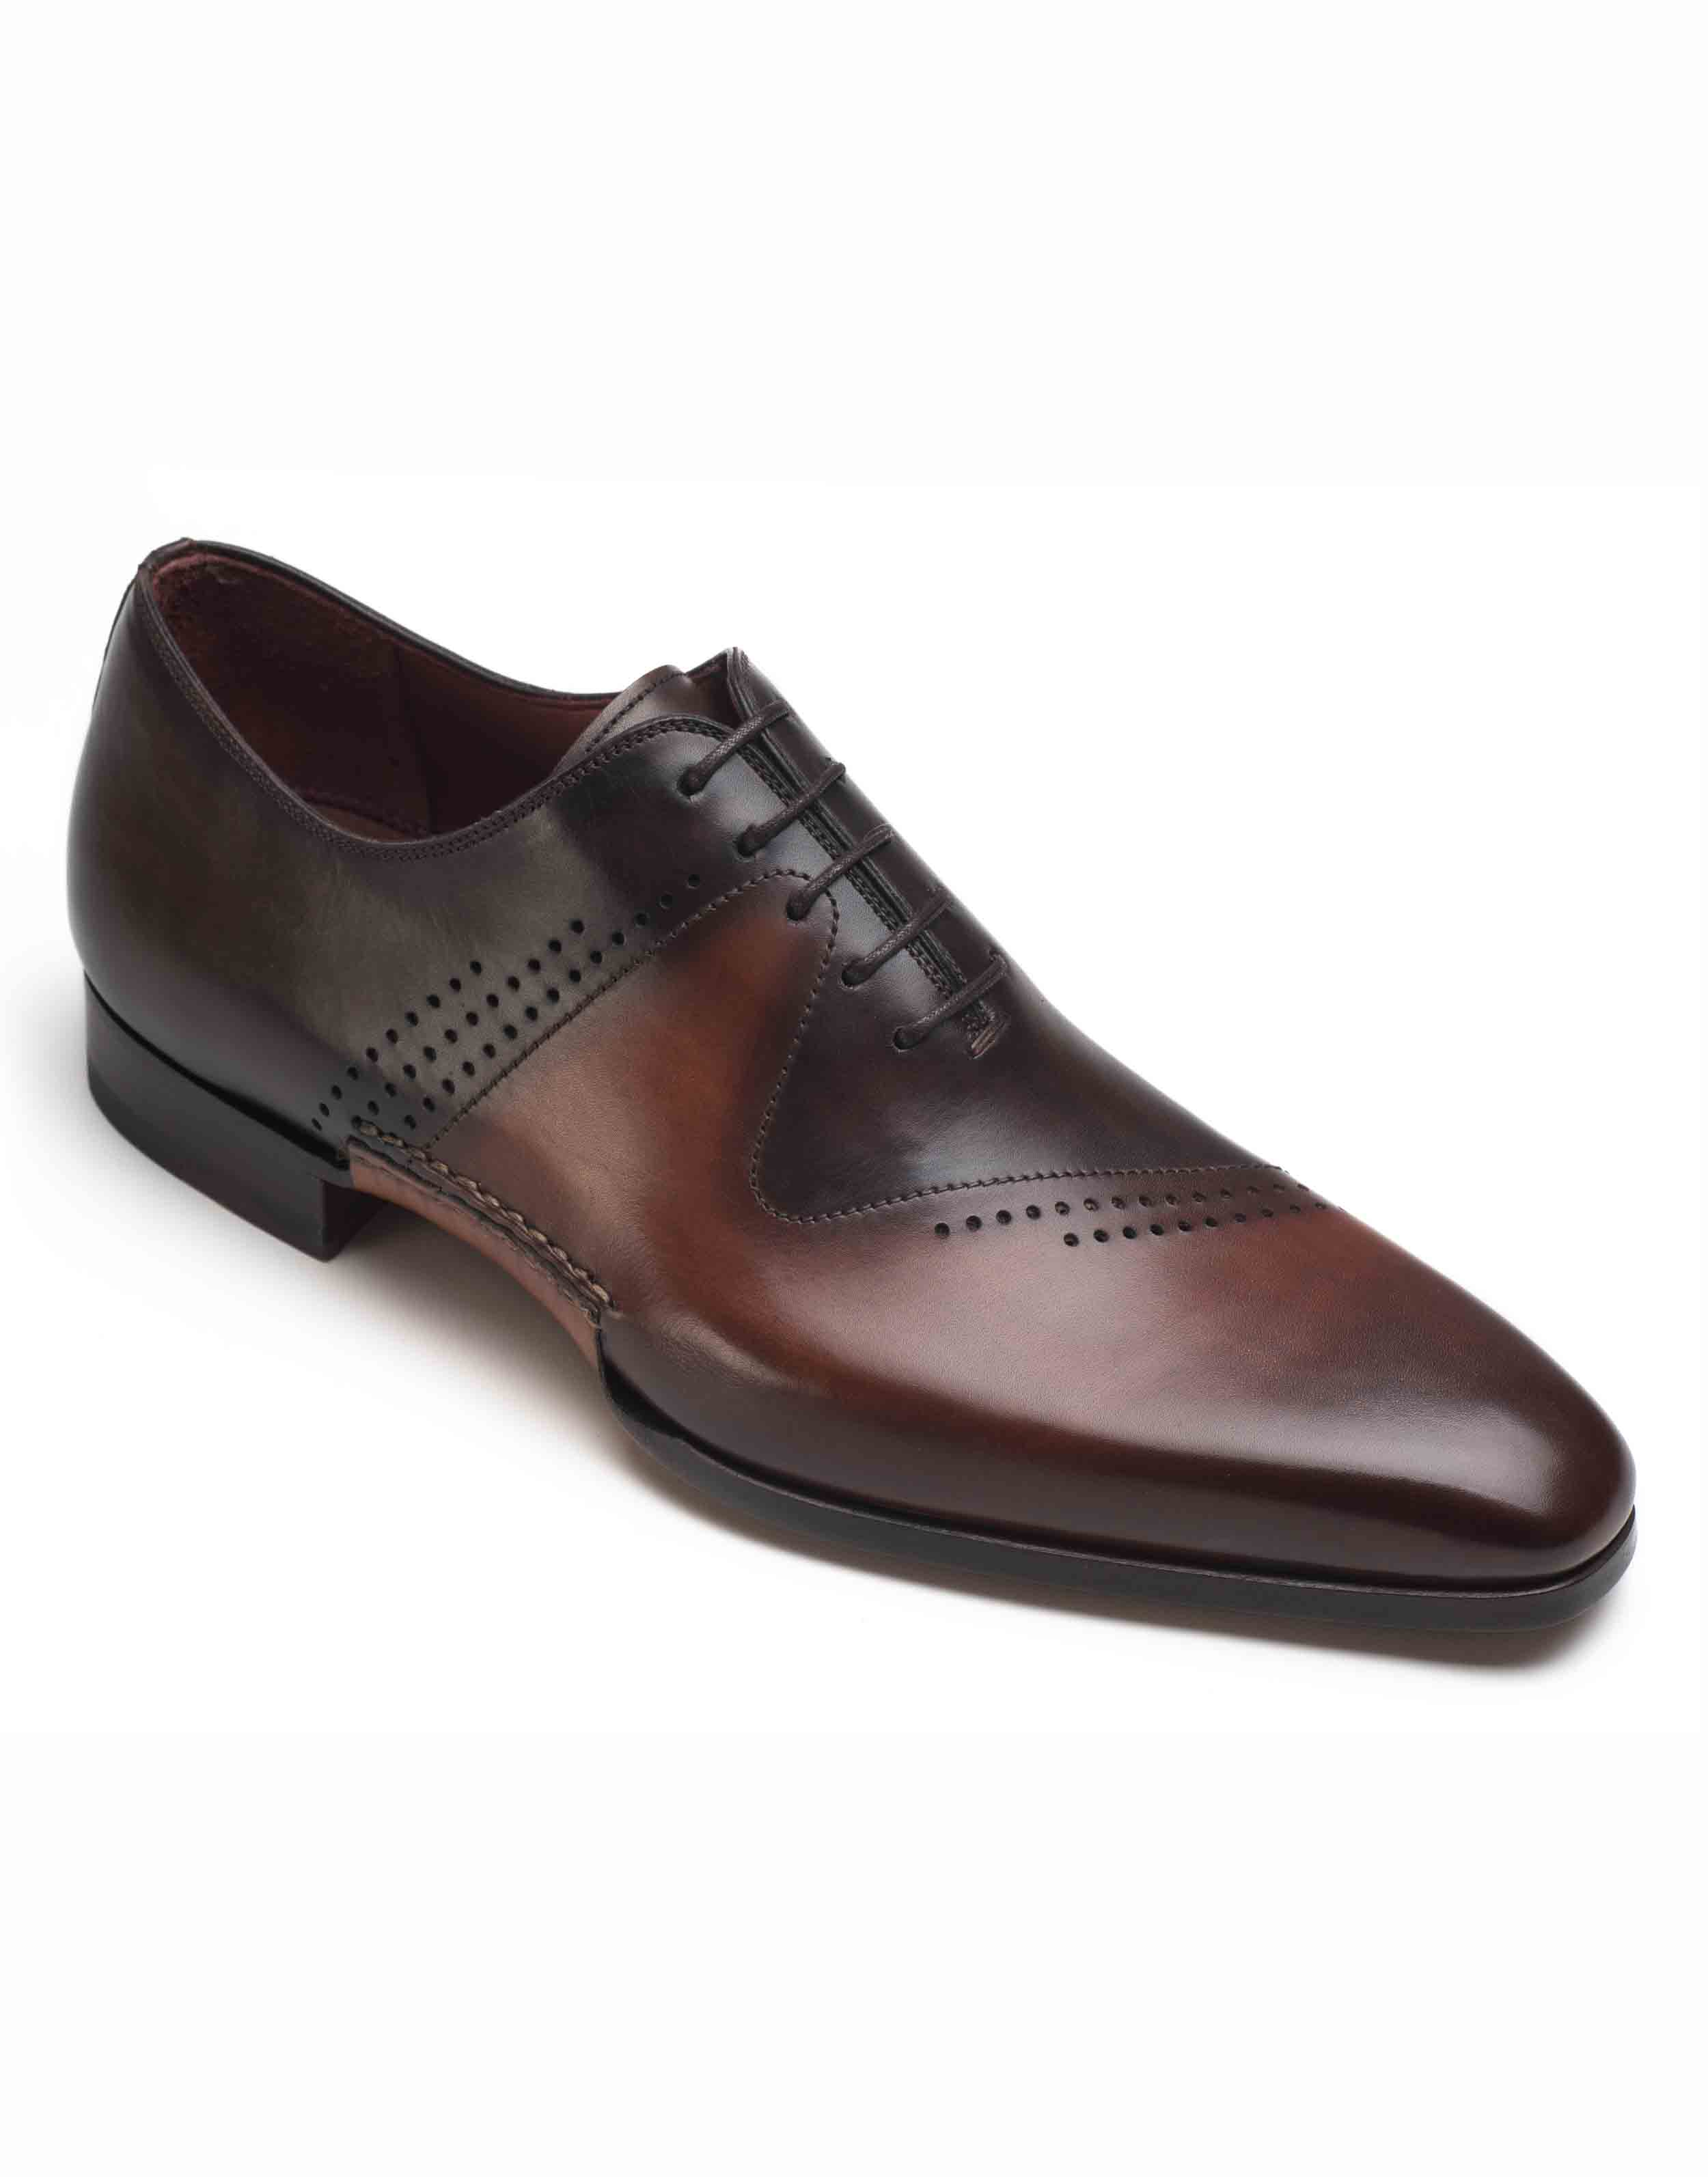 COGNAC AND BROWN OXFORD SHOE2